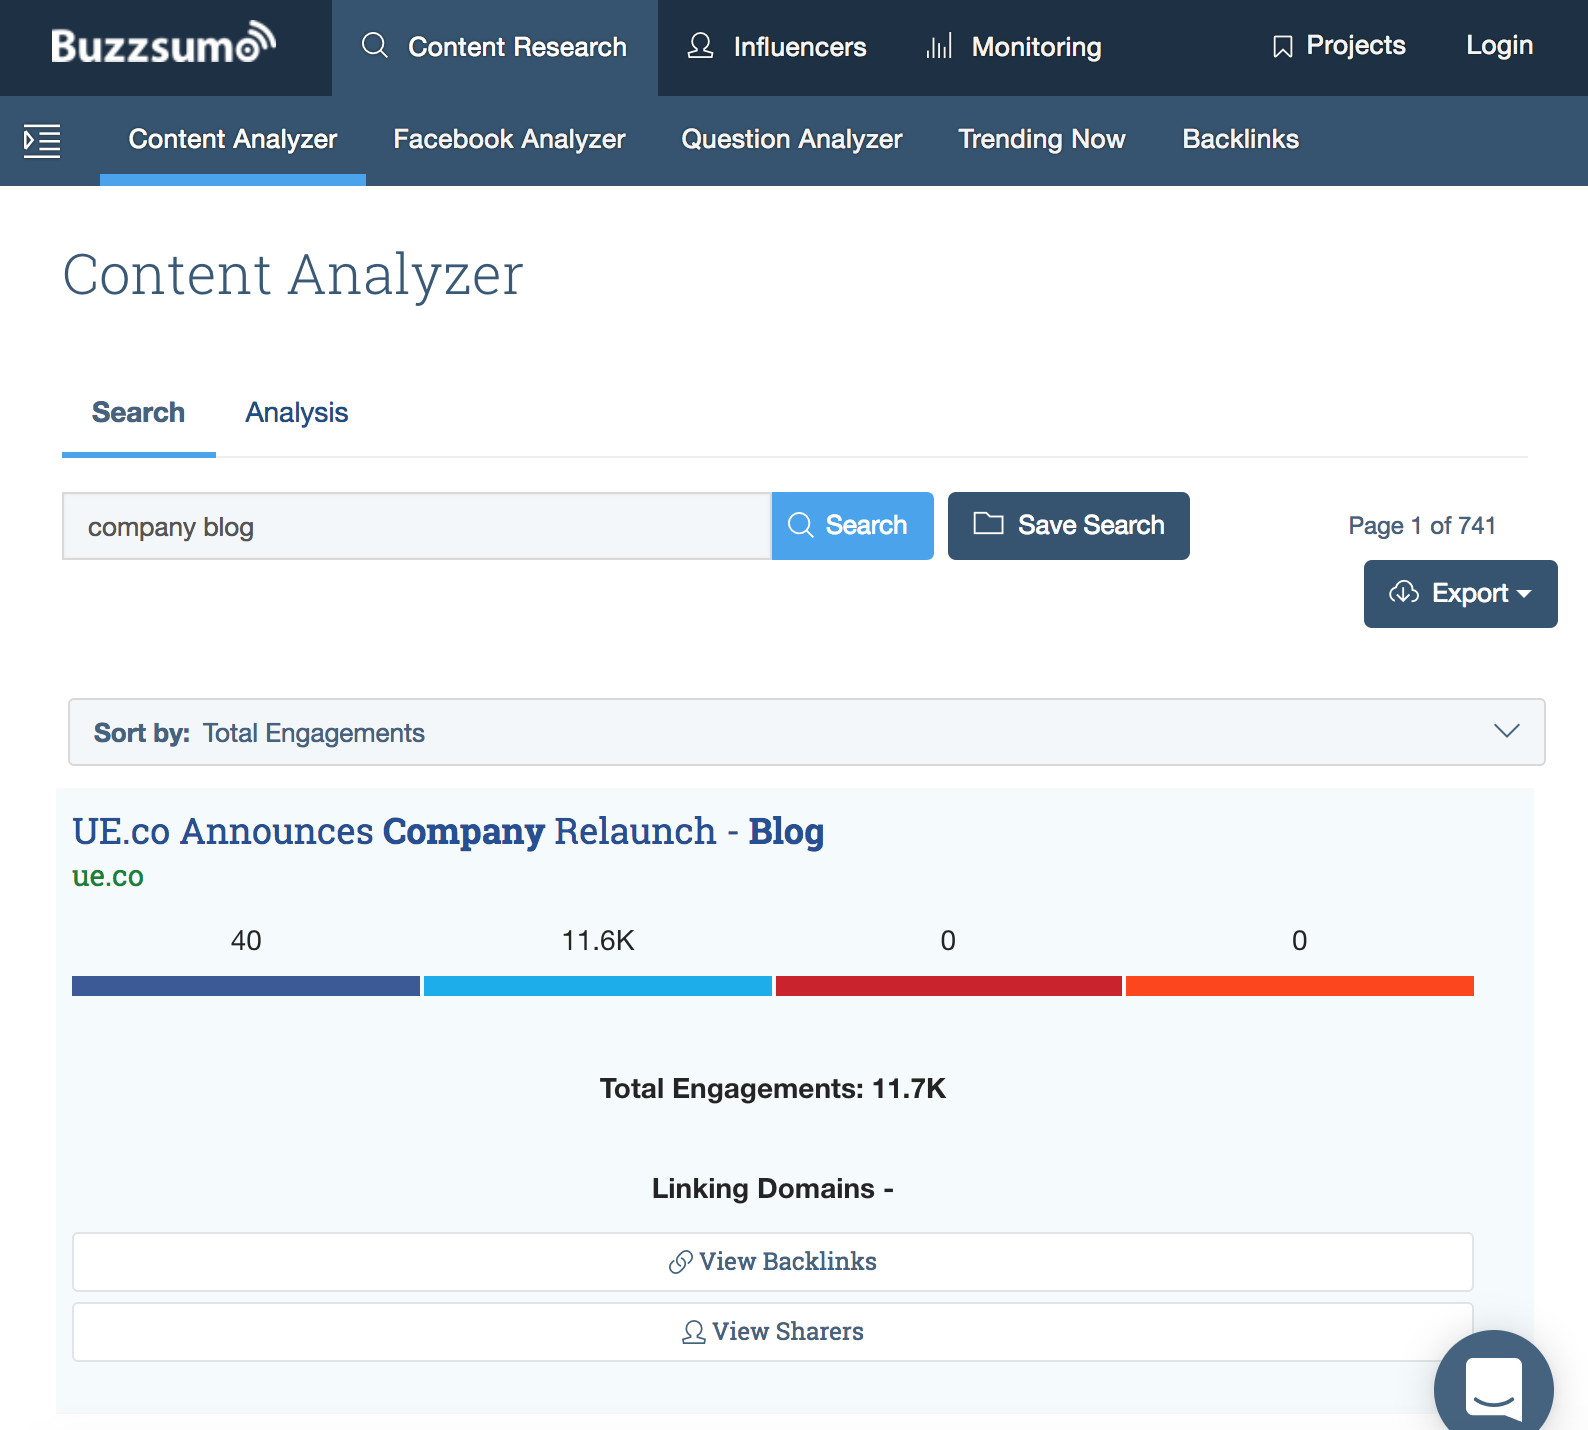 Buzzsumo helps analyze the content of every company blog you're in competition with